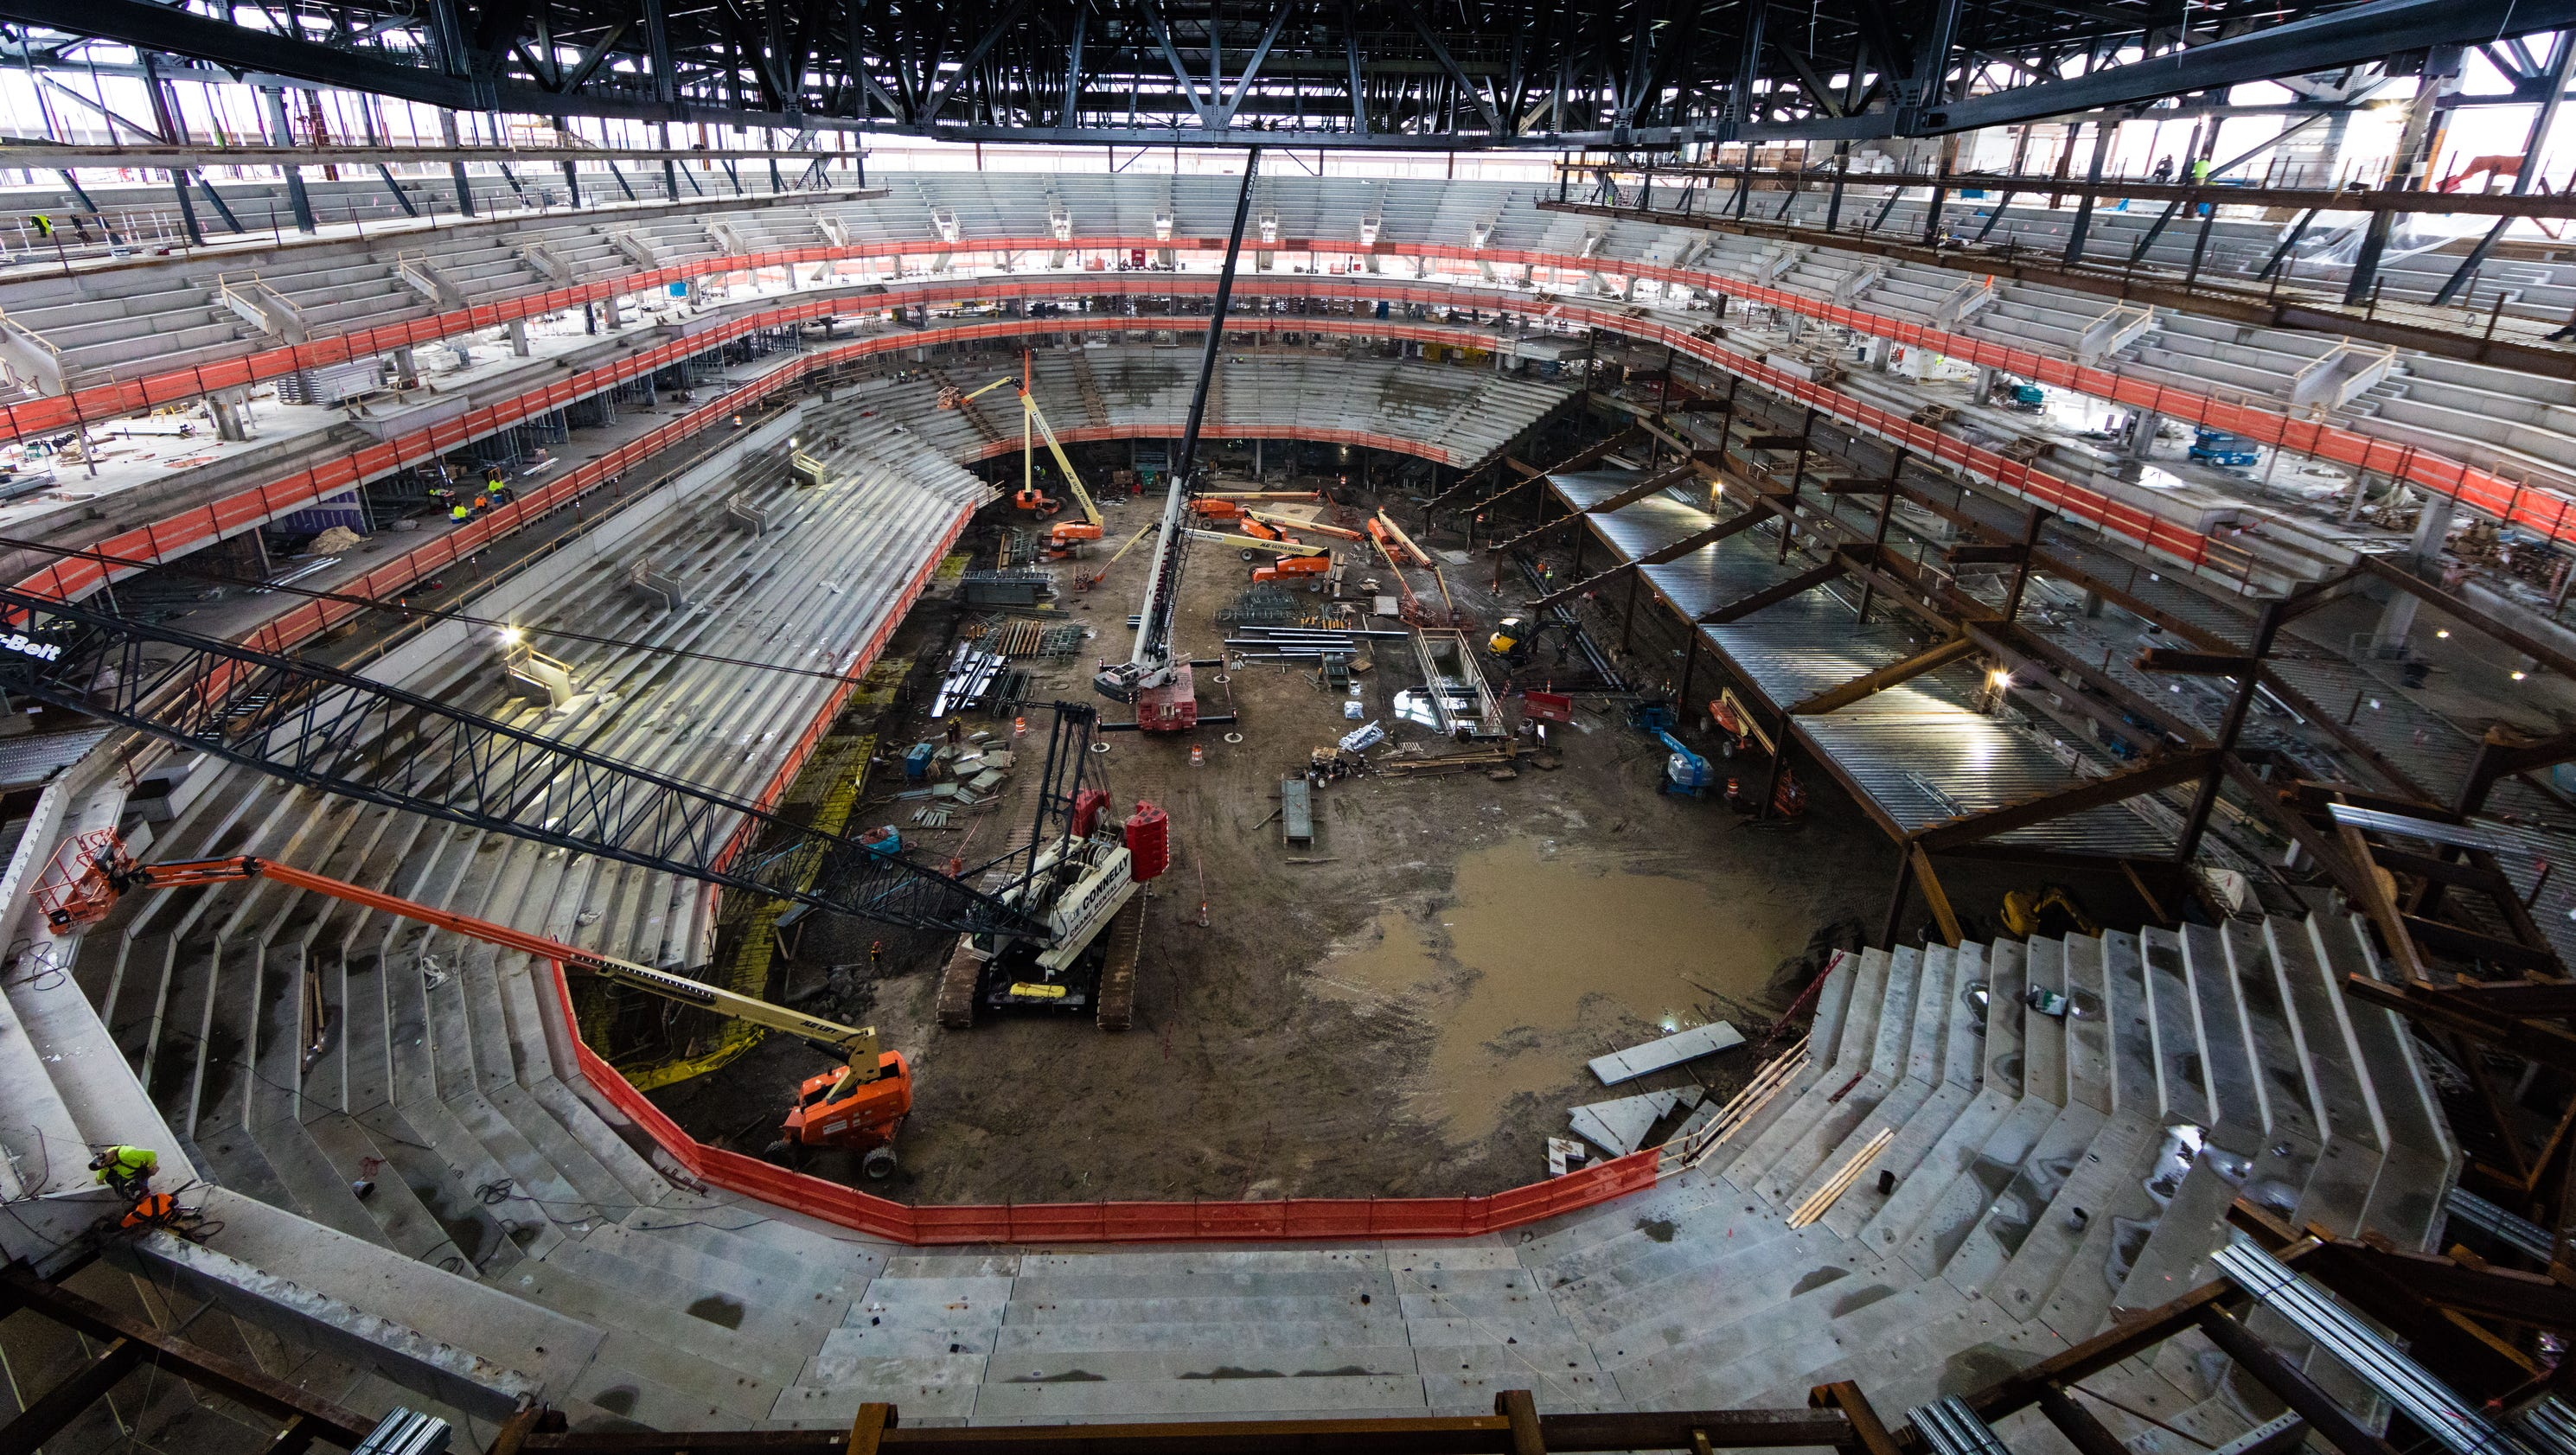 An Inside Look At The Little Caesars Arena Project